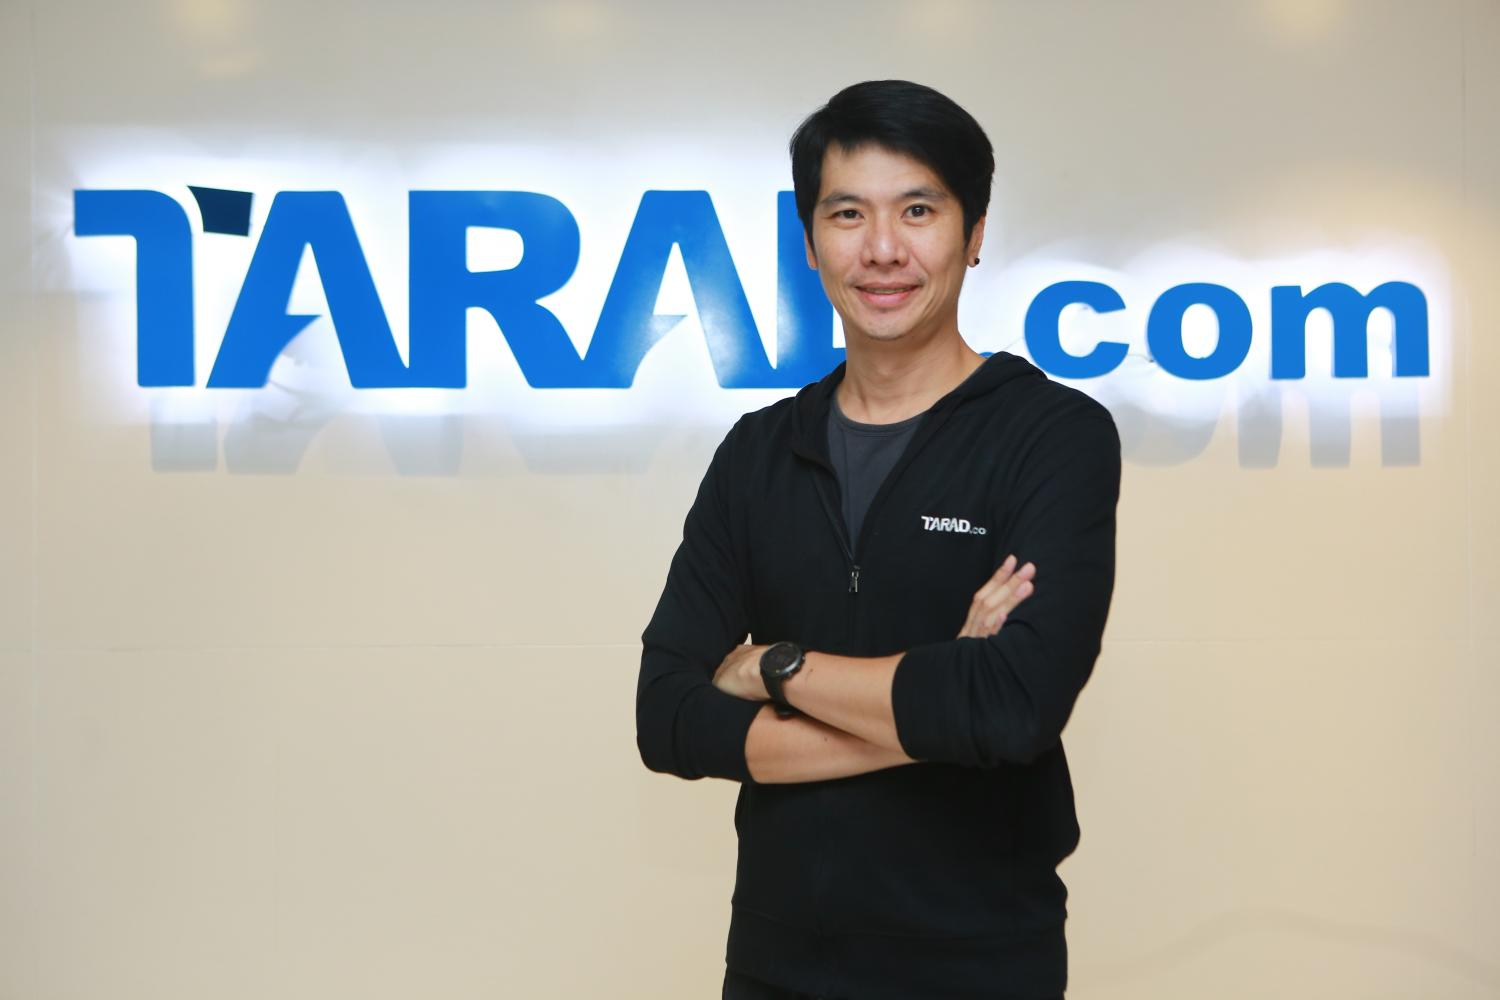 Mr Pawoot, the founder of Tarad.com, in the company's offices at CW Tower.